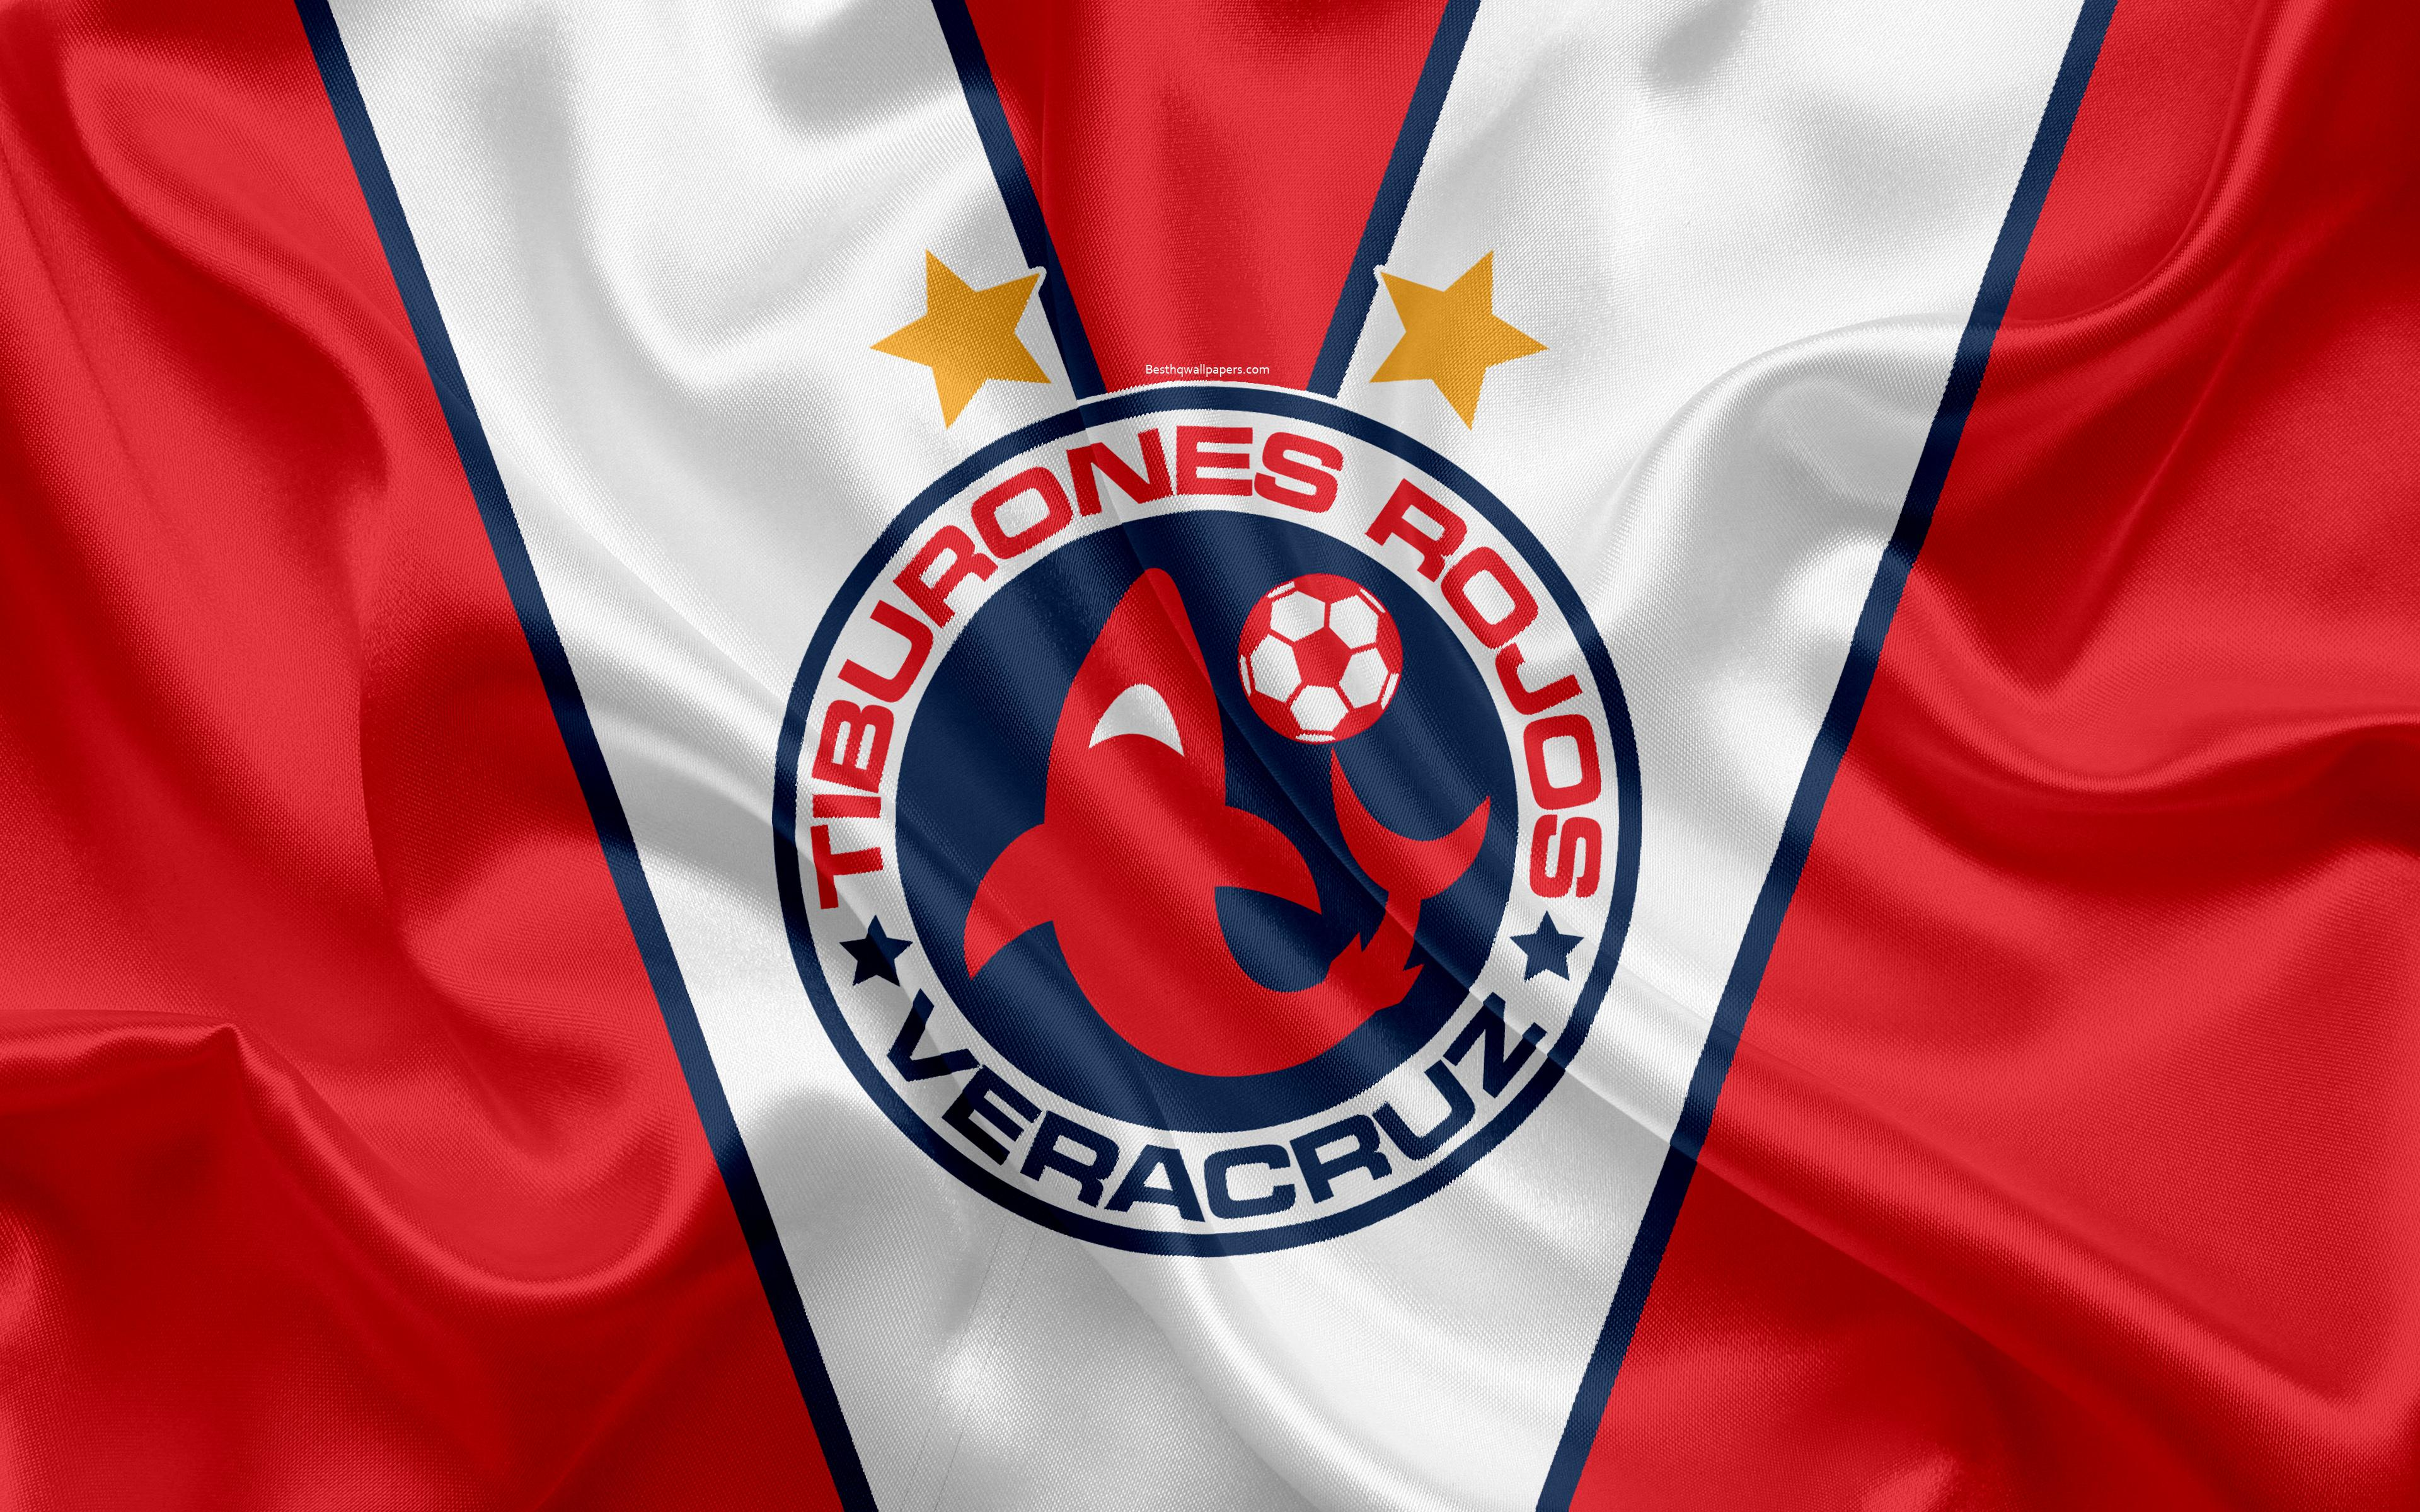 Download wallpapers Veracruz FC, Tiburones Rojos de Veracruz, 4k